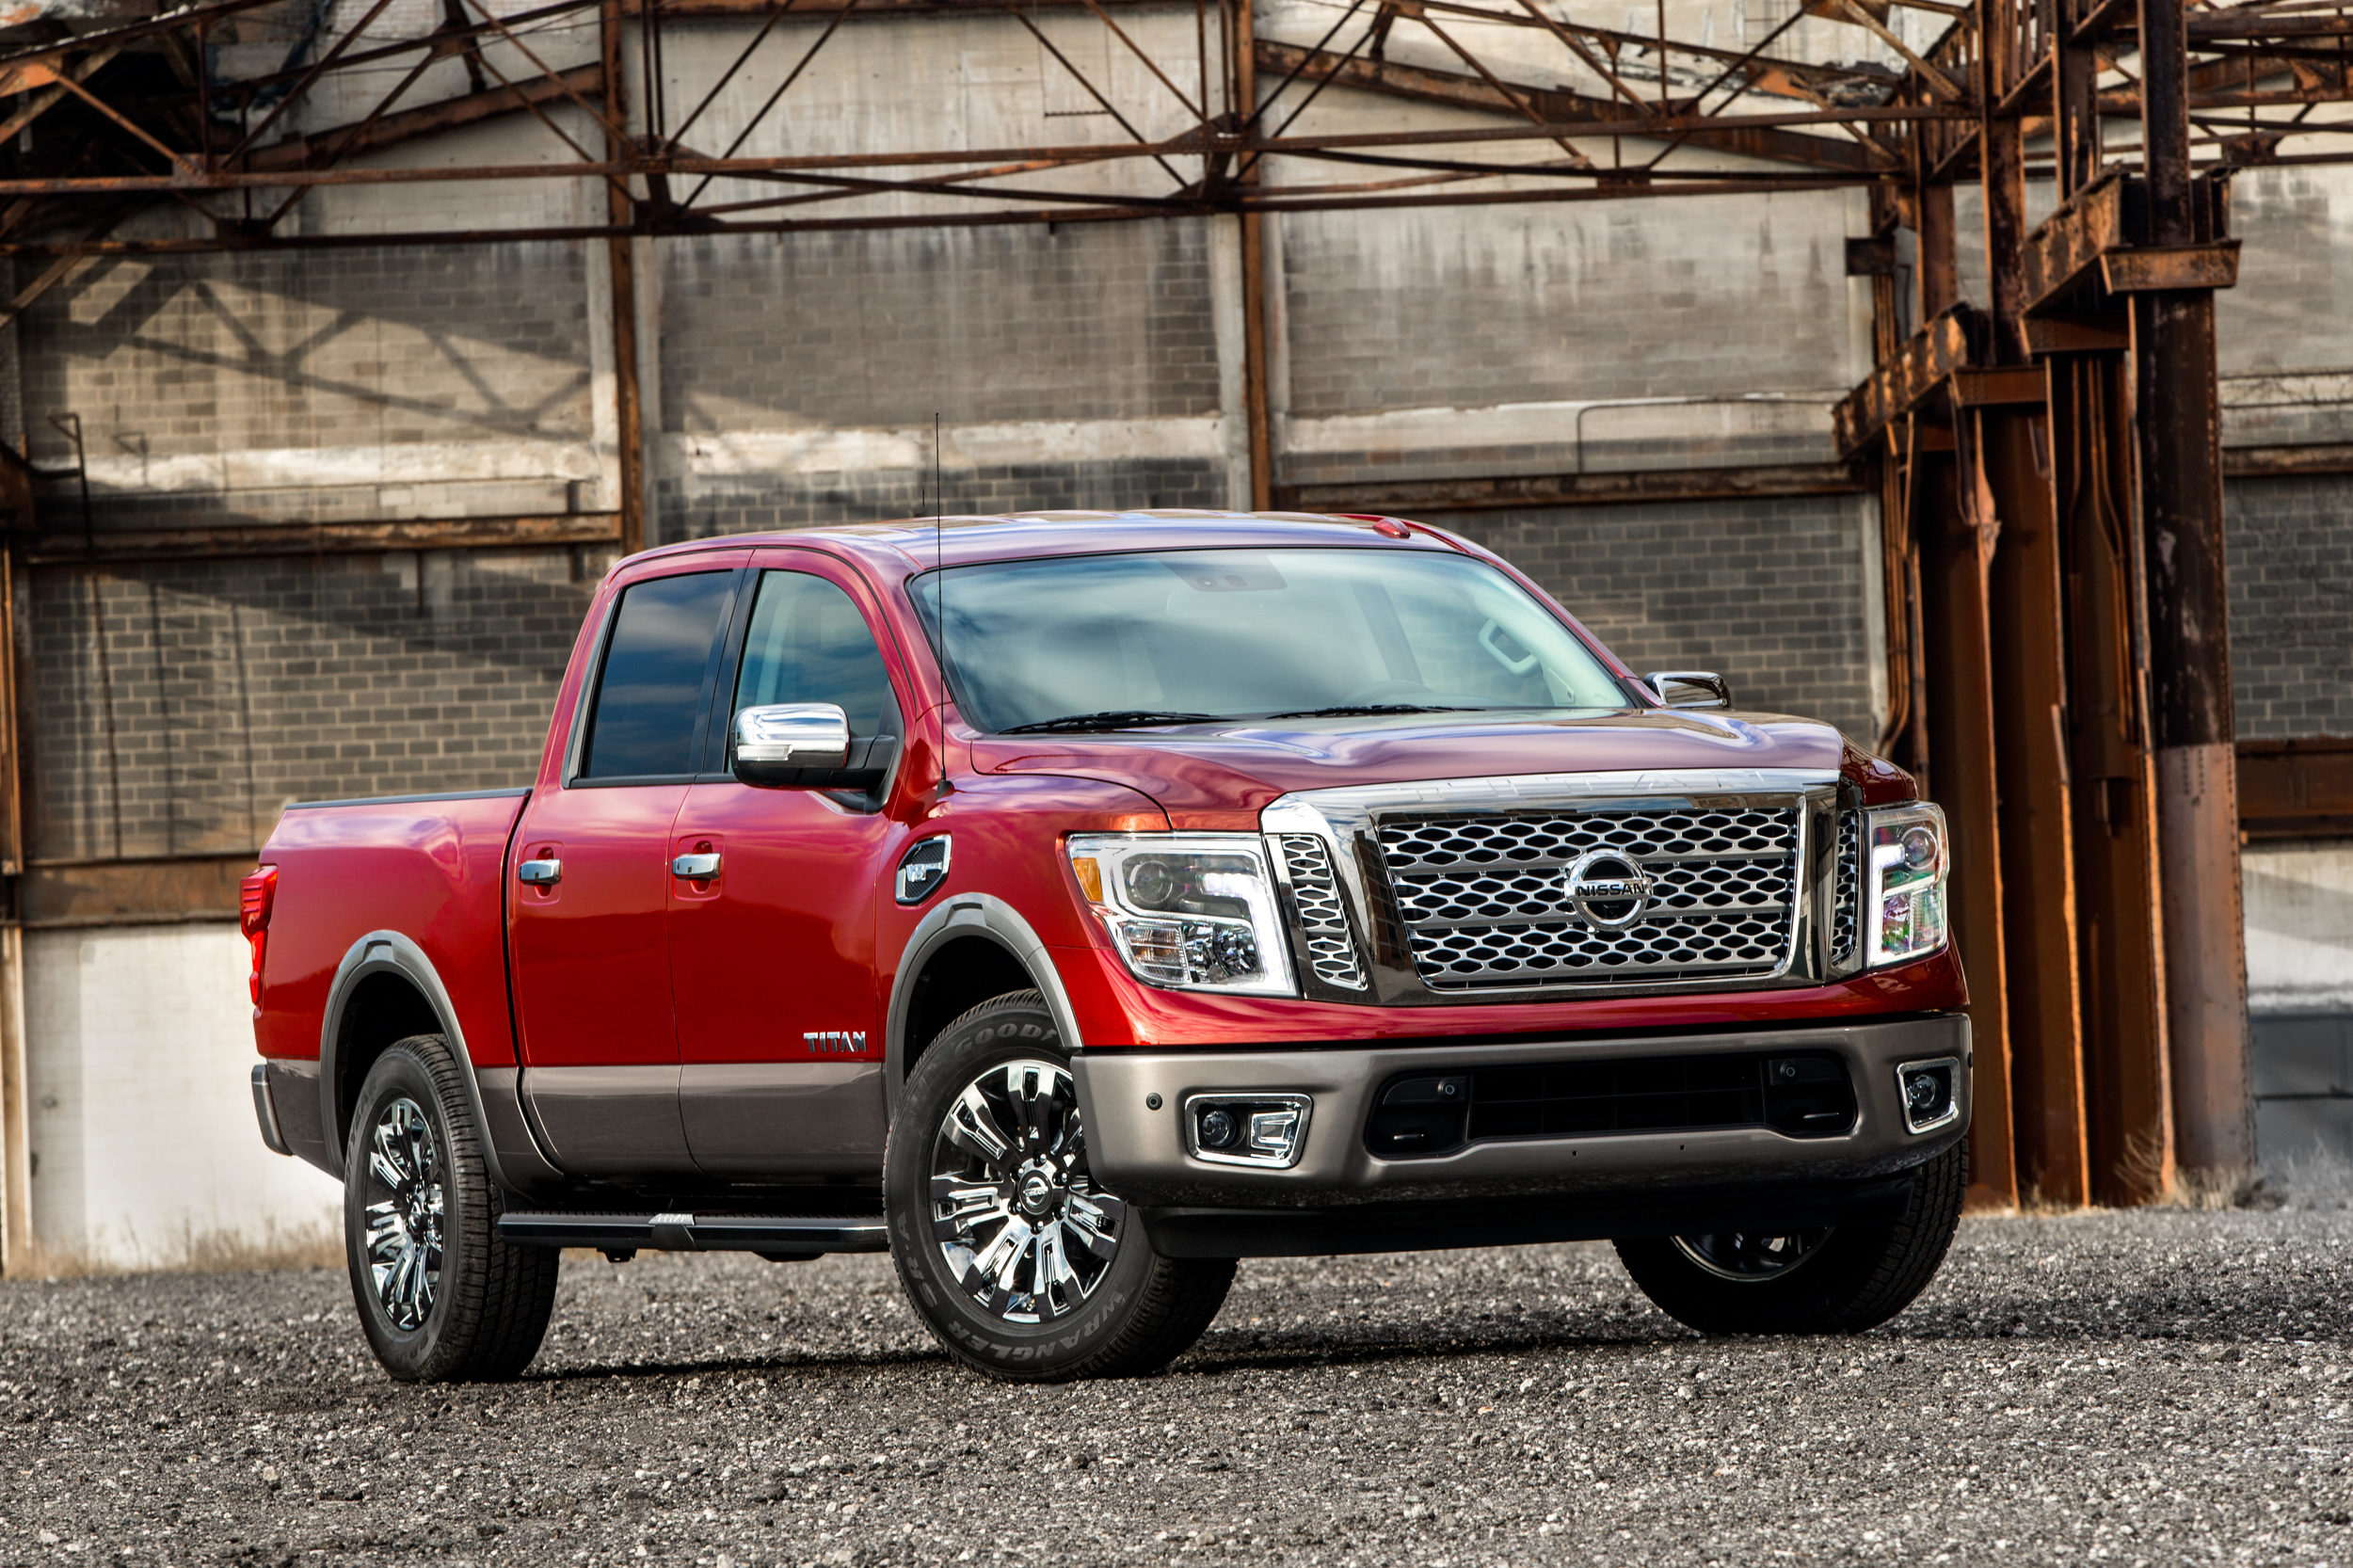 2017 nissan titan half ton in crew cab form priced from 35 975 autoevolution. Black Bedroom Furniture Sets. Home Design Ideas